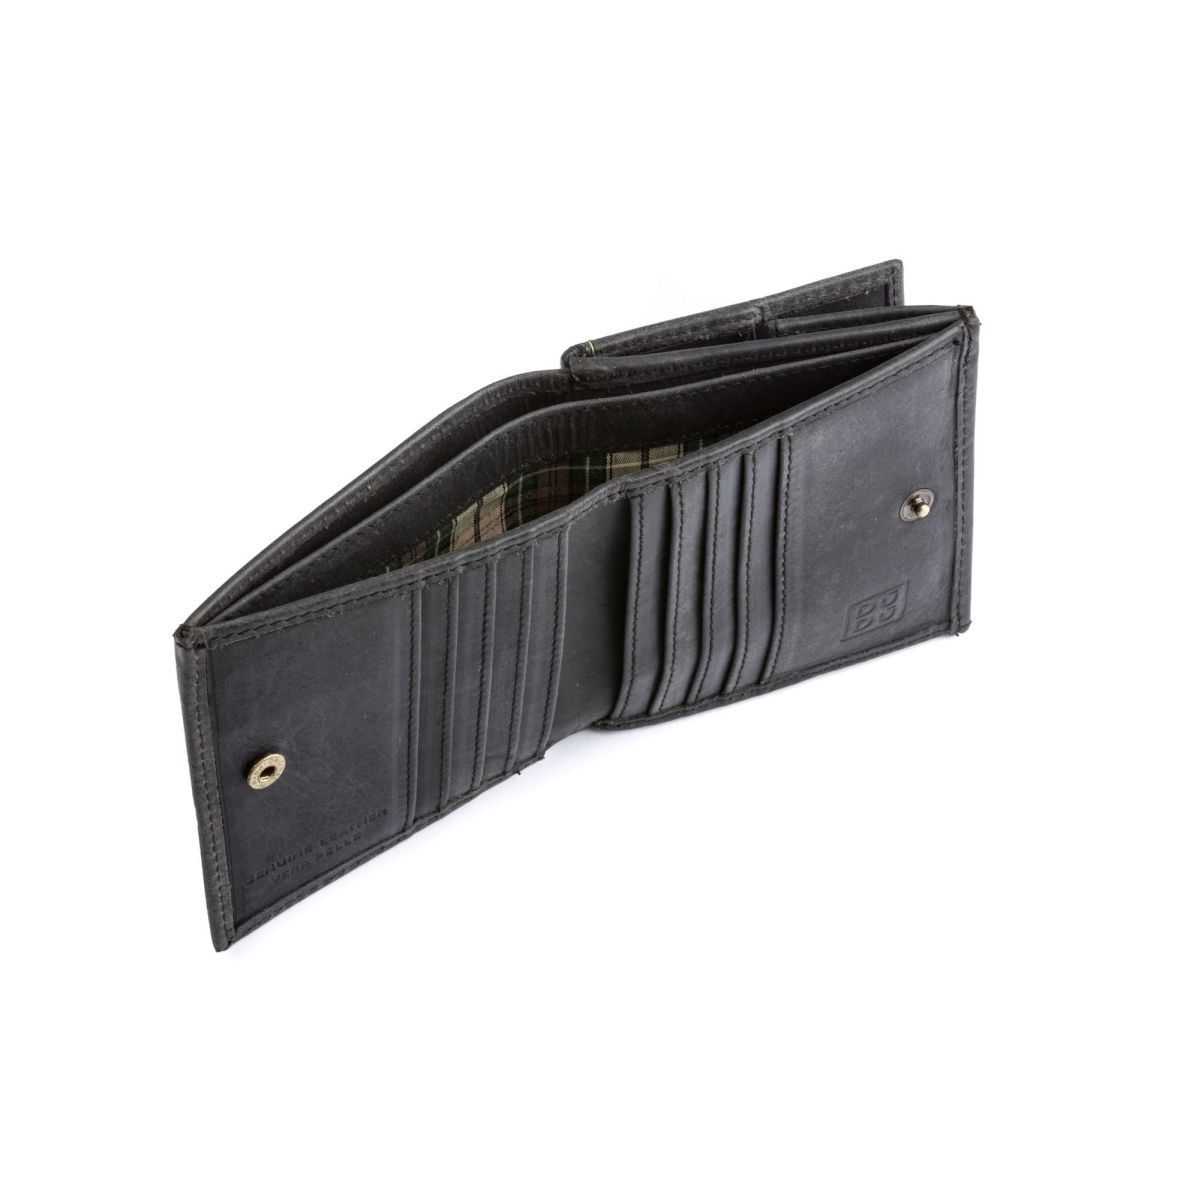 Small Unique Vintage Leather Wallet  - Black